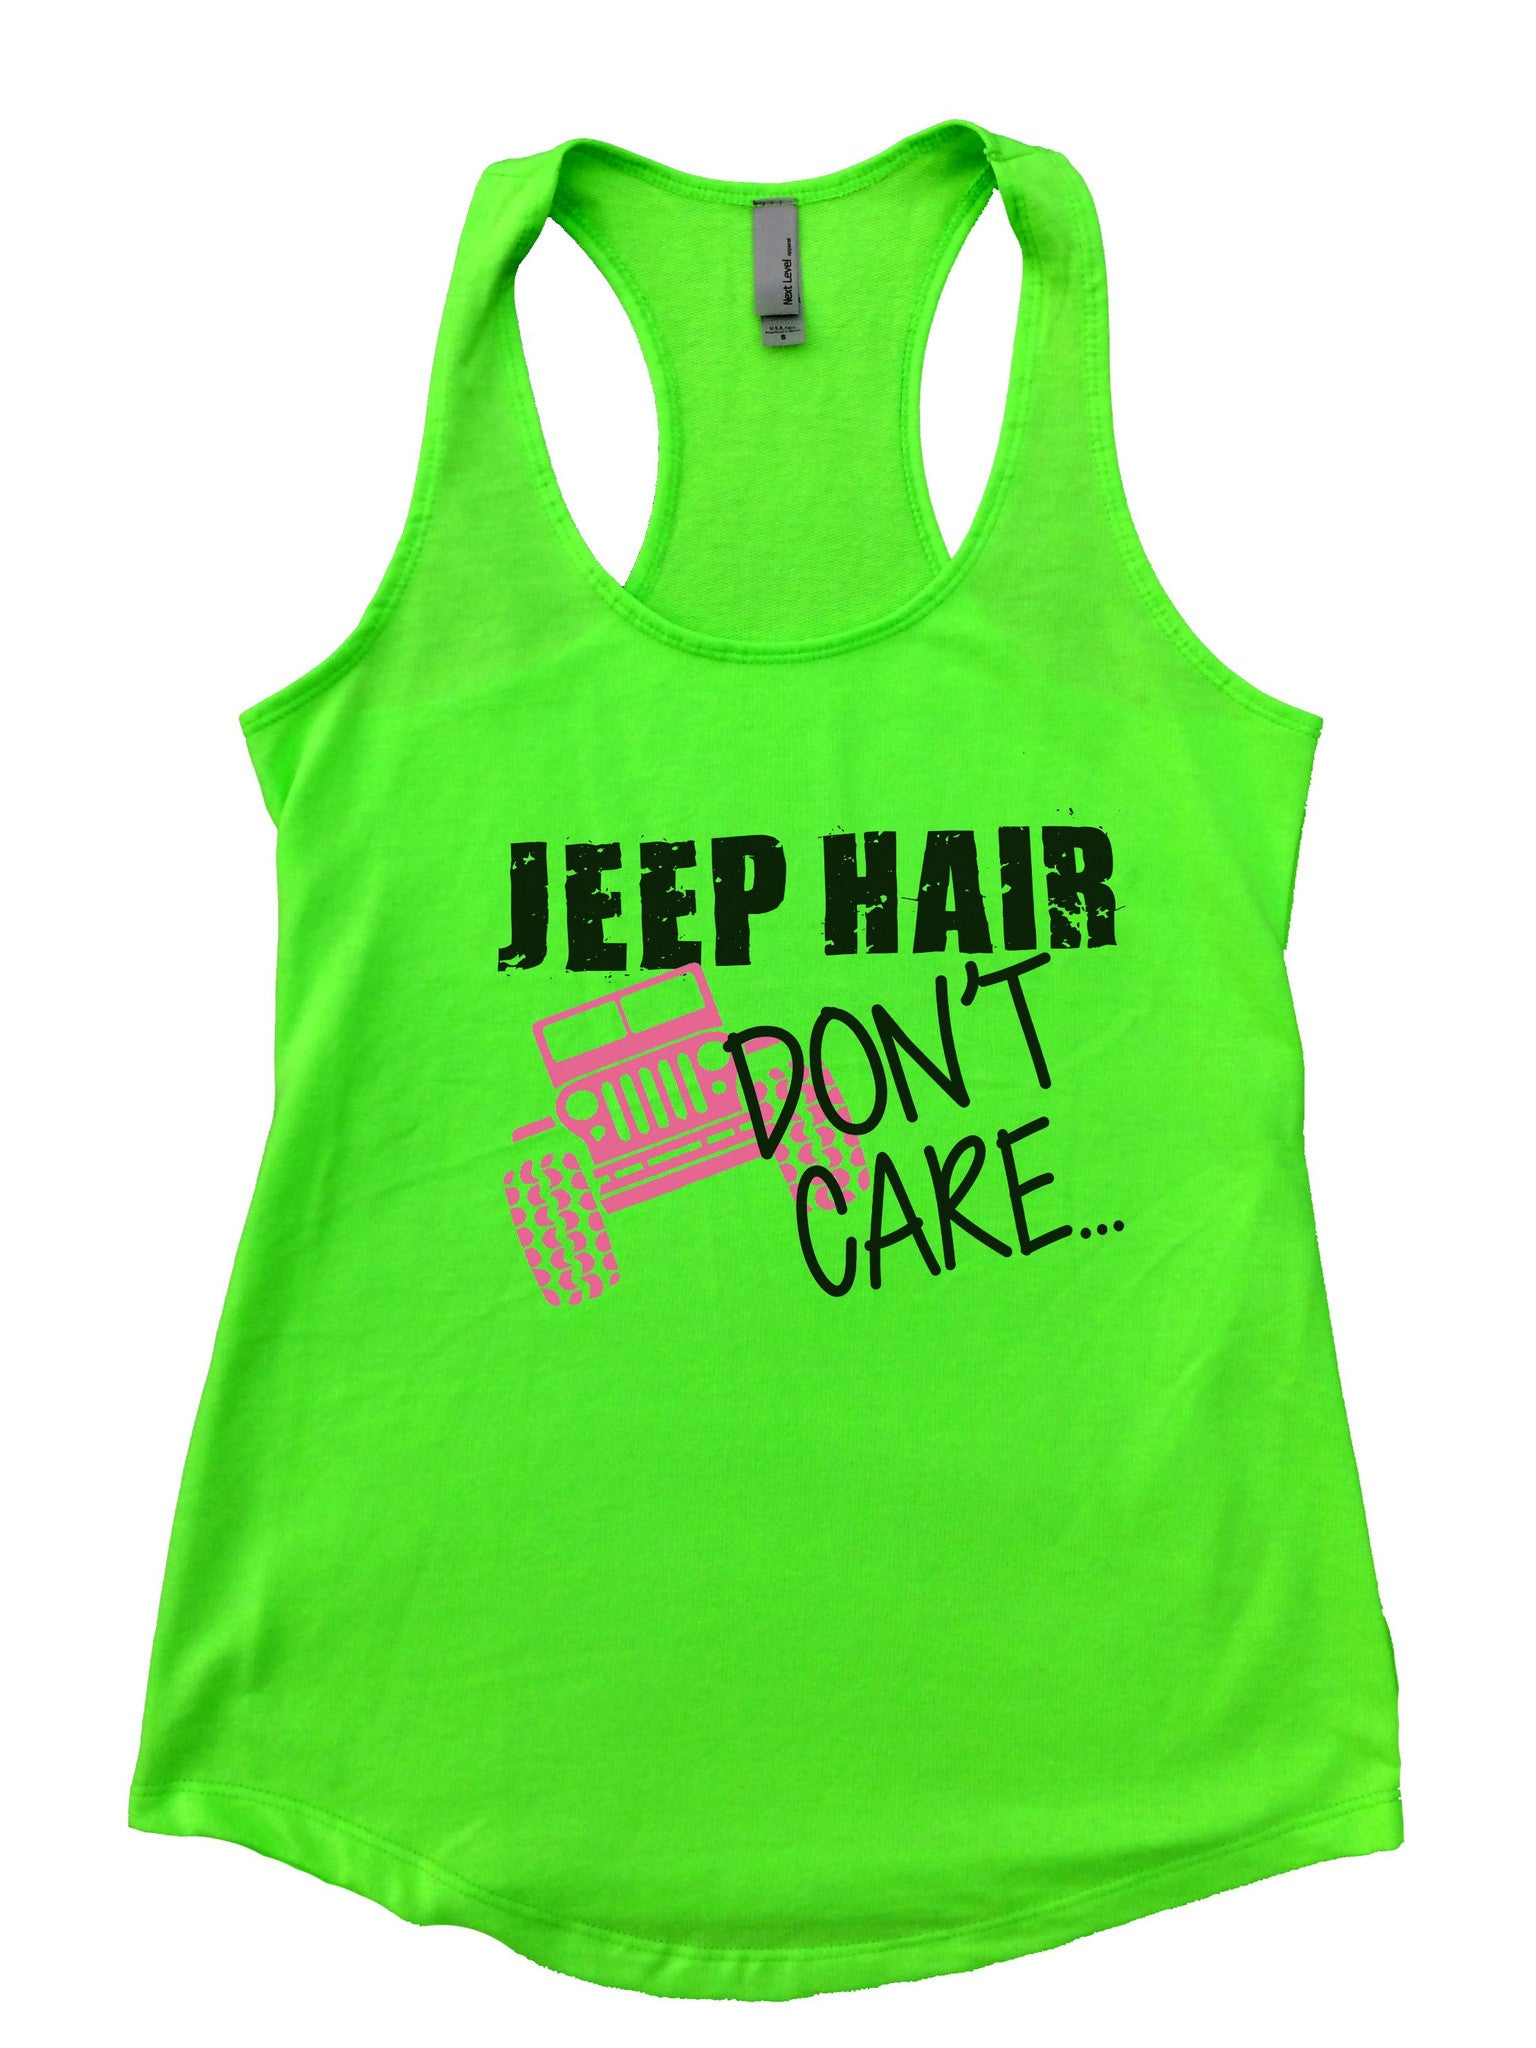 Jeep Hair Dont Care Womens Workout Tank Top F729 - Funny Shirts Tank Tops Burnouts and Triblends  - 5